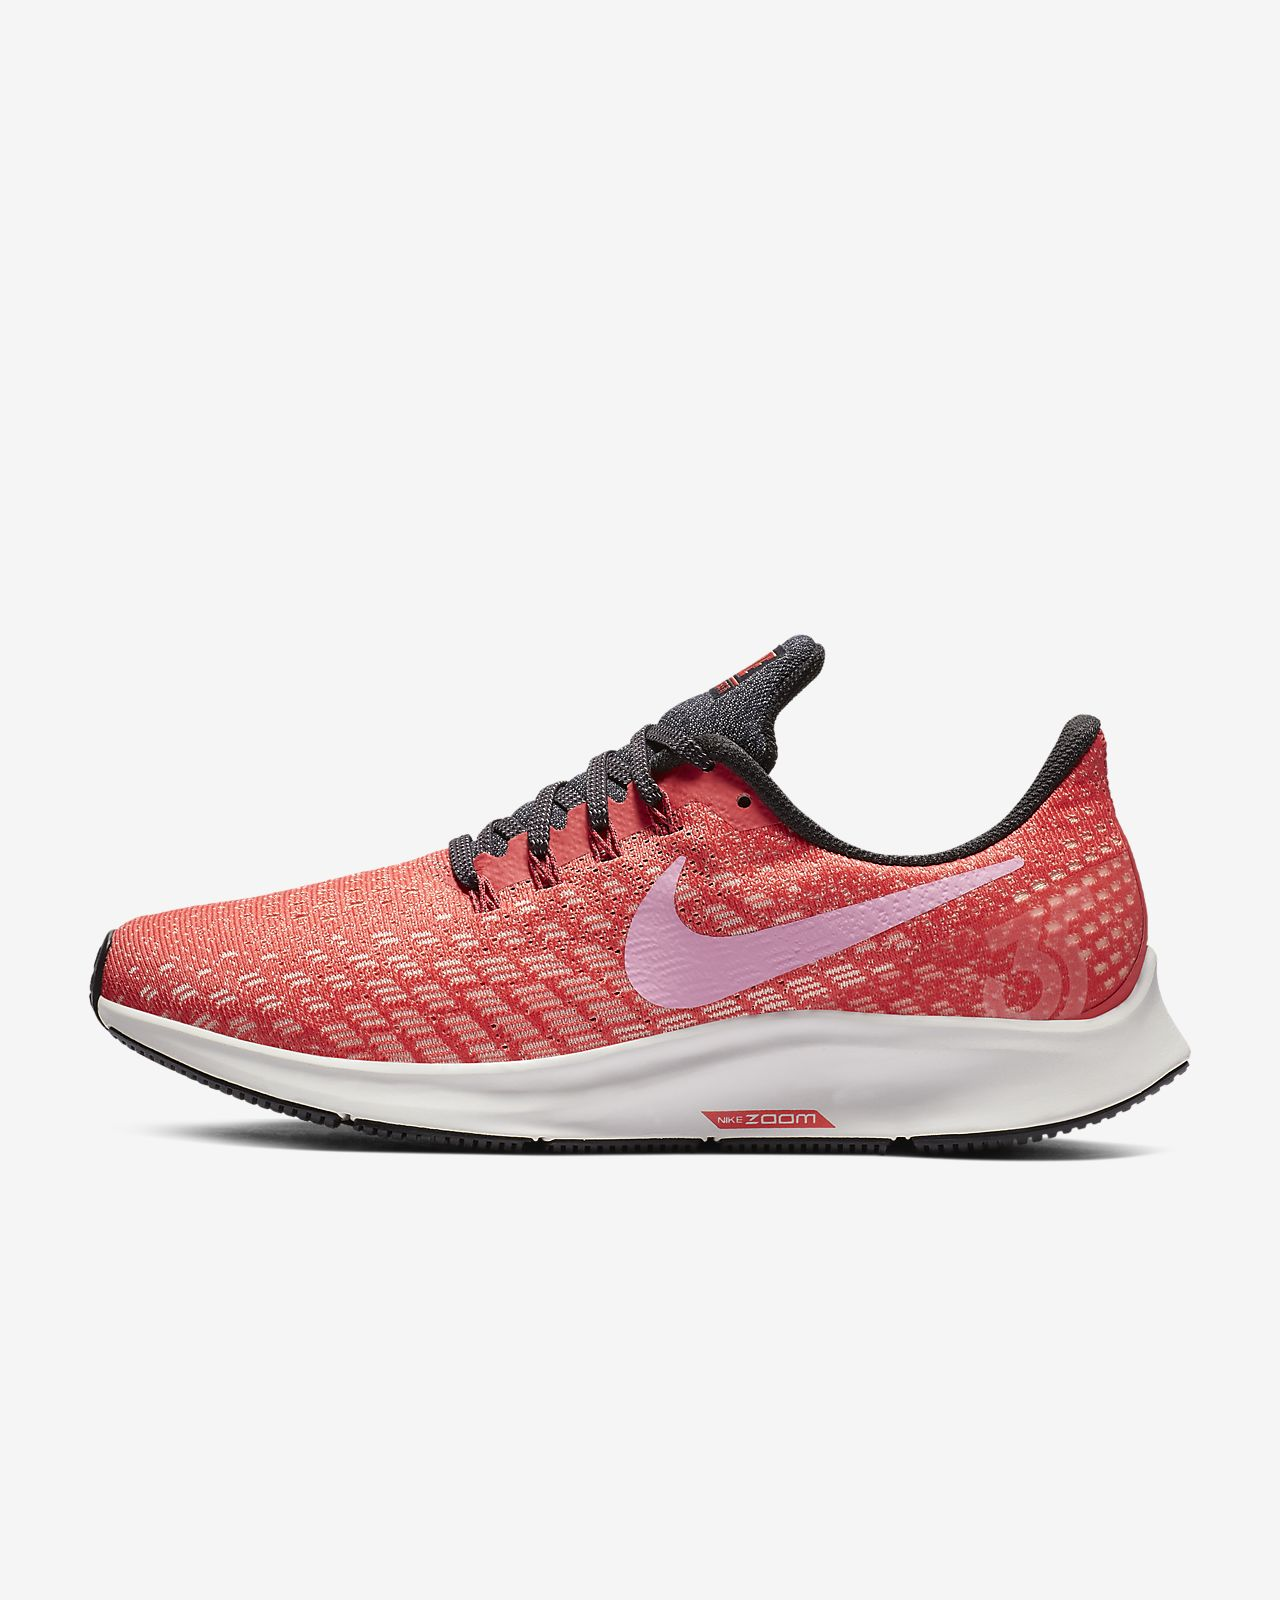 quality design 9943e 7c31b 83,97. € 120. Low Resolution Nike Air Zoom Pegasus 35 Women s Running Shoe Nike  Air Zoom Pegasus 35 Women s Running Shoe